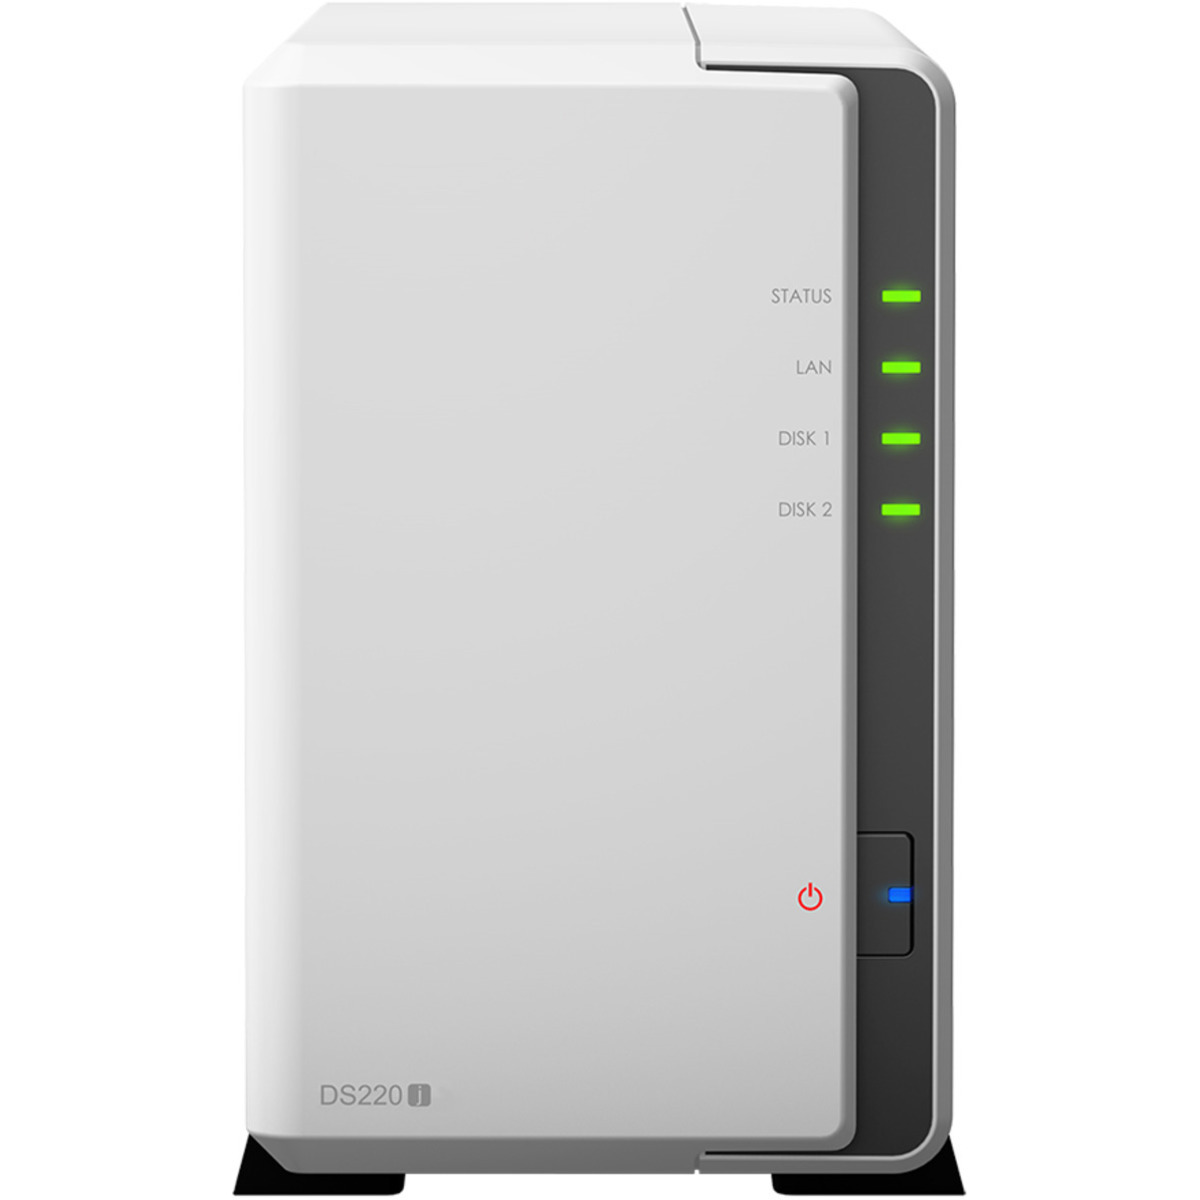 buy $404 Synology DiskStation DS220j 8tb Desktop NAS - Network Attached Storage Device 2x4000gb Seagate BarraCuda ST4000DM004 3.5 7200rpm SATA 6Gb/s HDD CONSUMER Class Drives Installed - Burn-In Tested - nas headquarters buy network attached storage server device das new raid-5 free shipping usa holiday new year clearance sale DiskStation DS220j